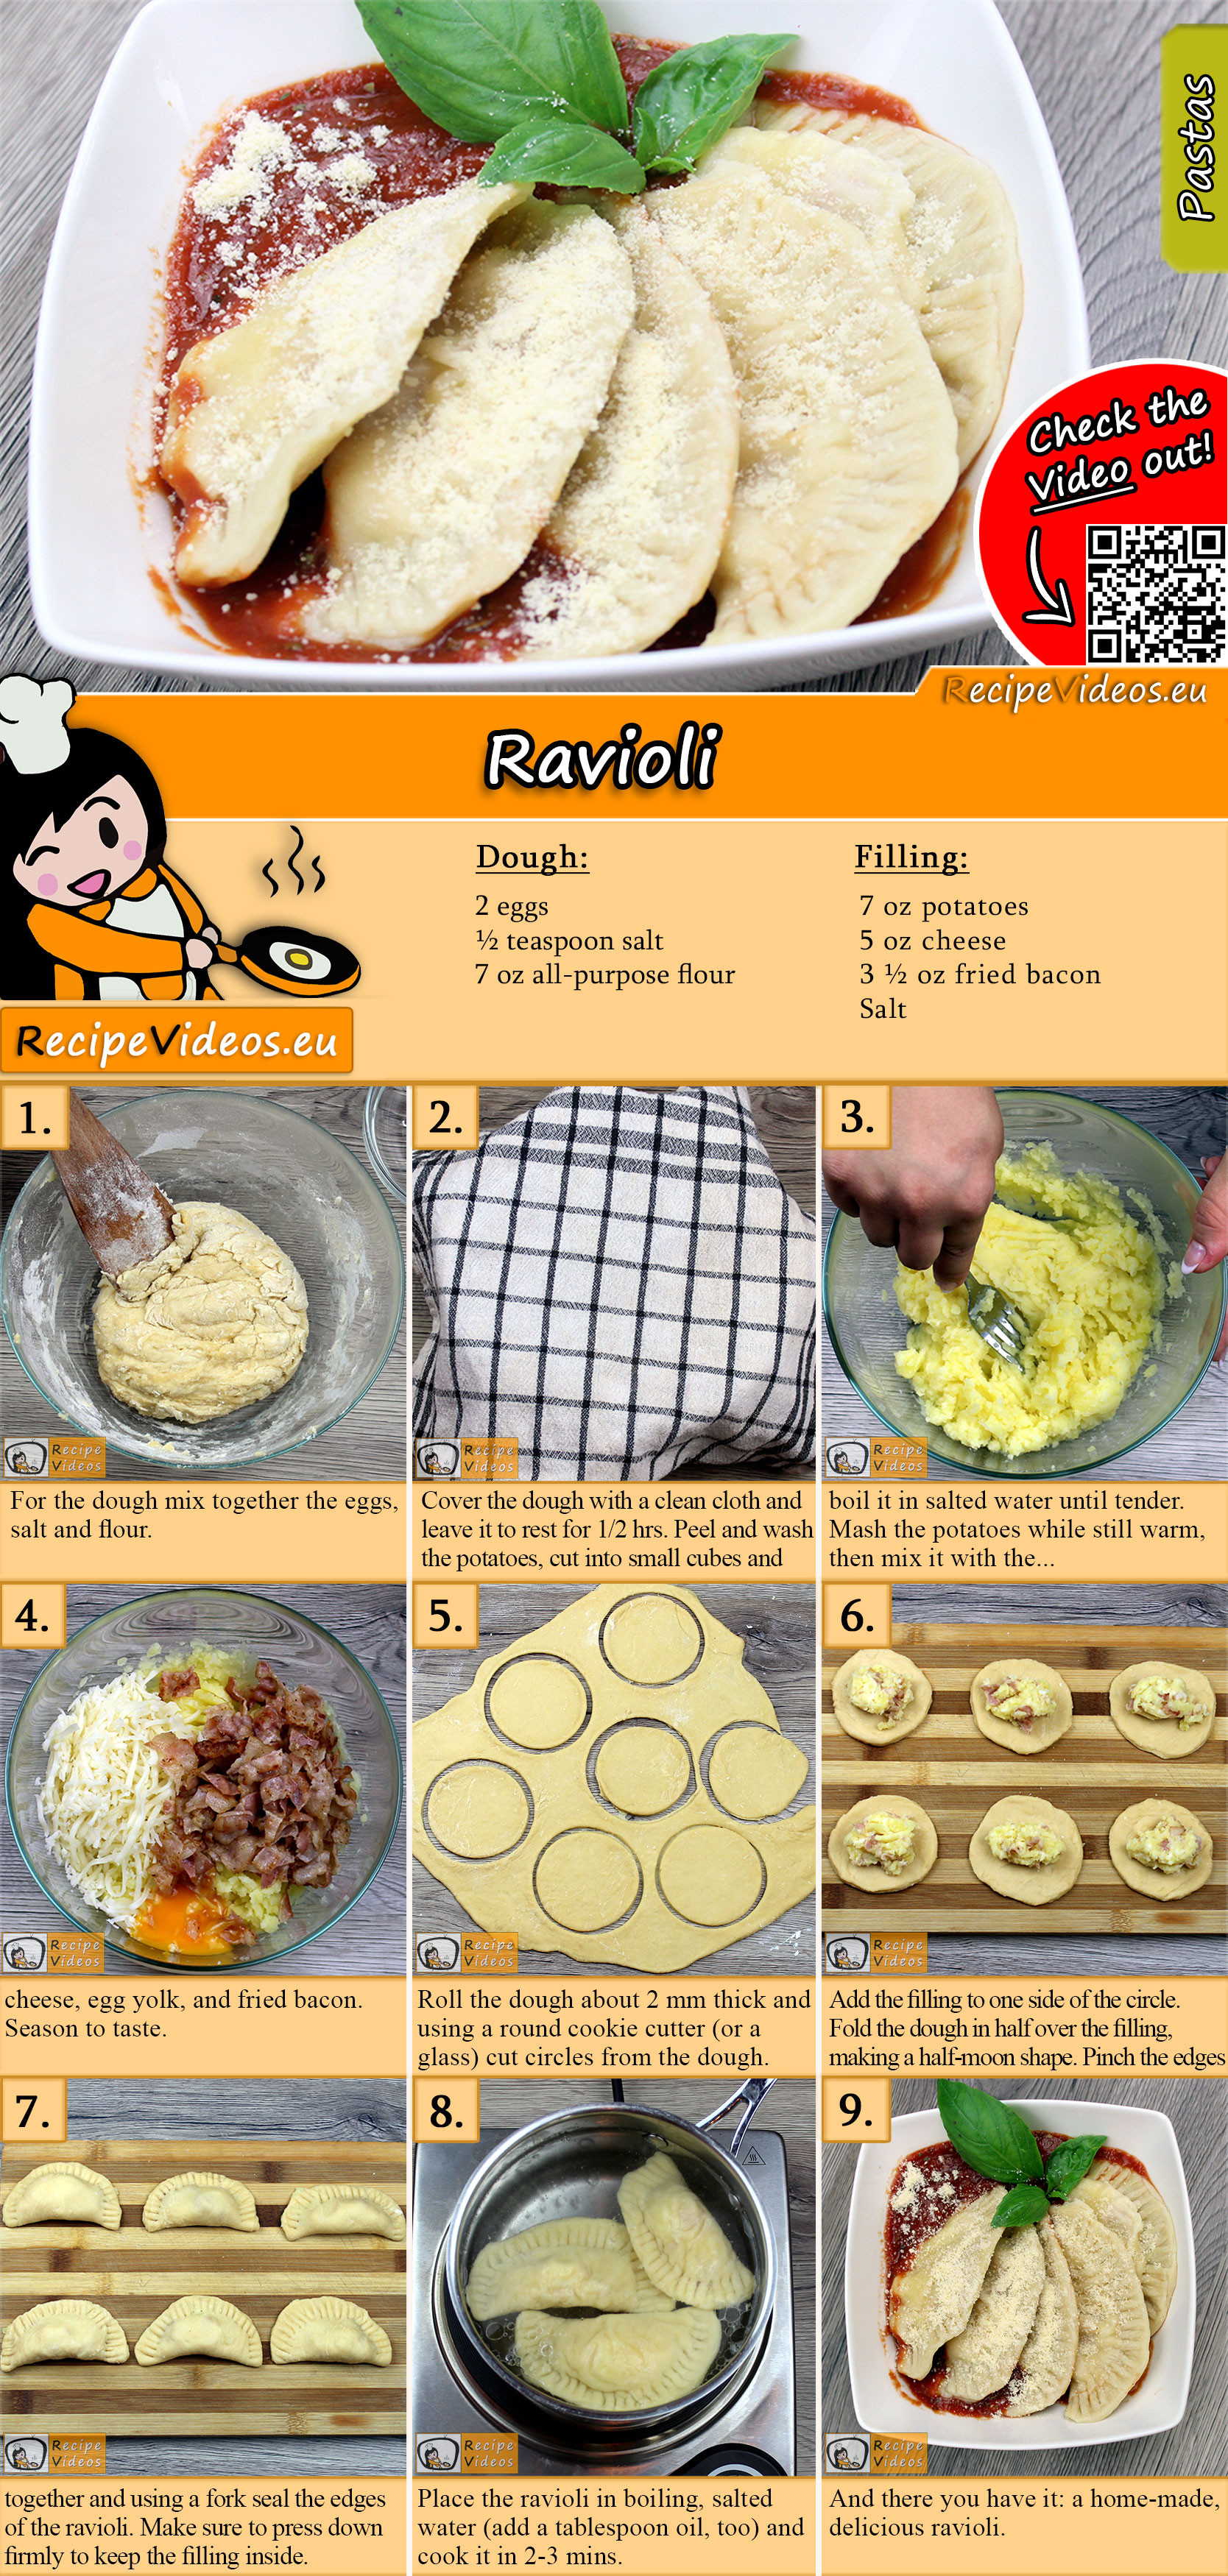 Ravioli recipe with video